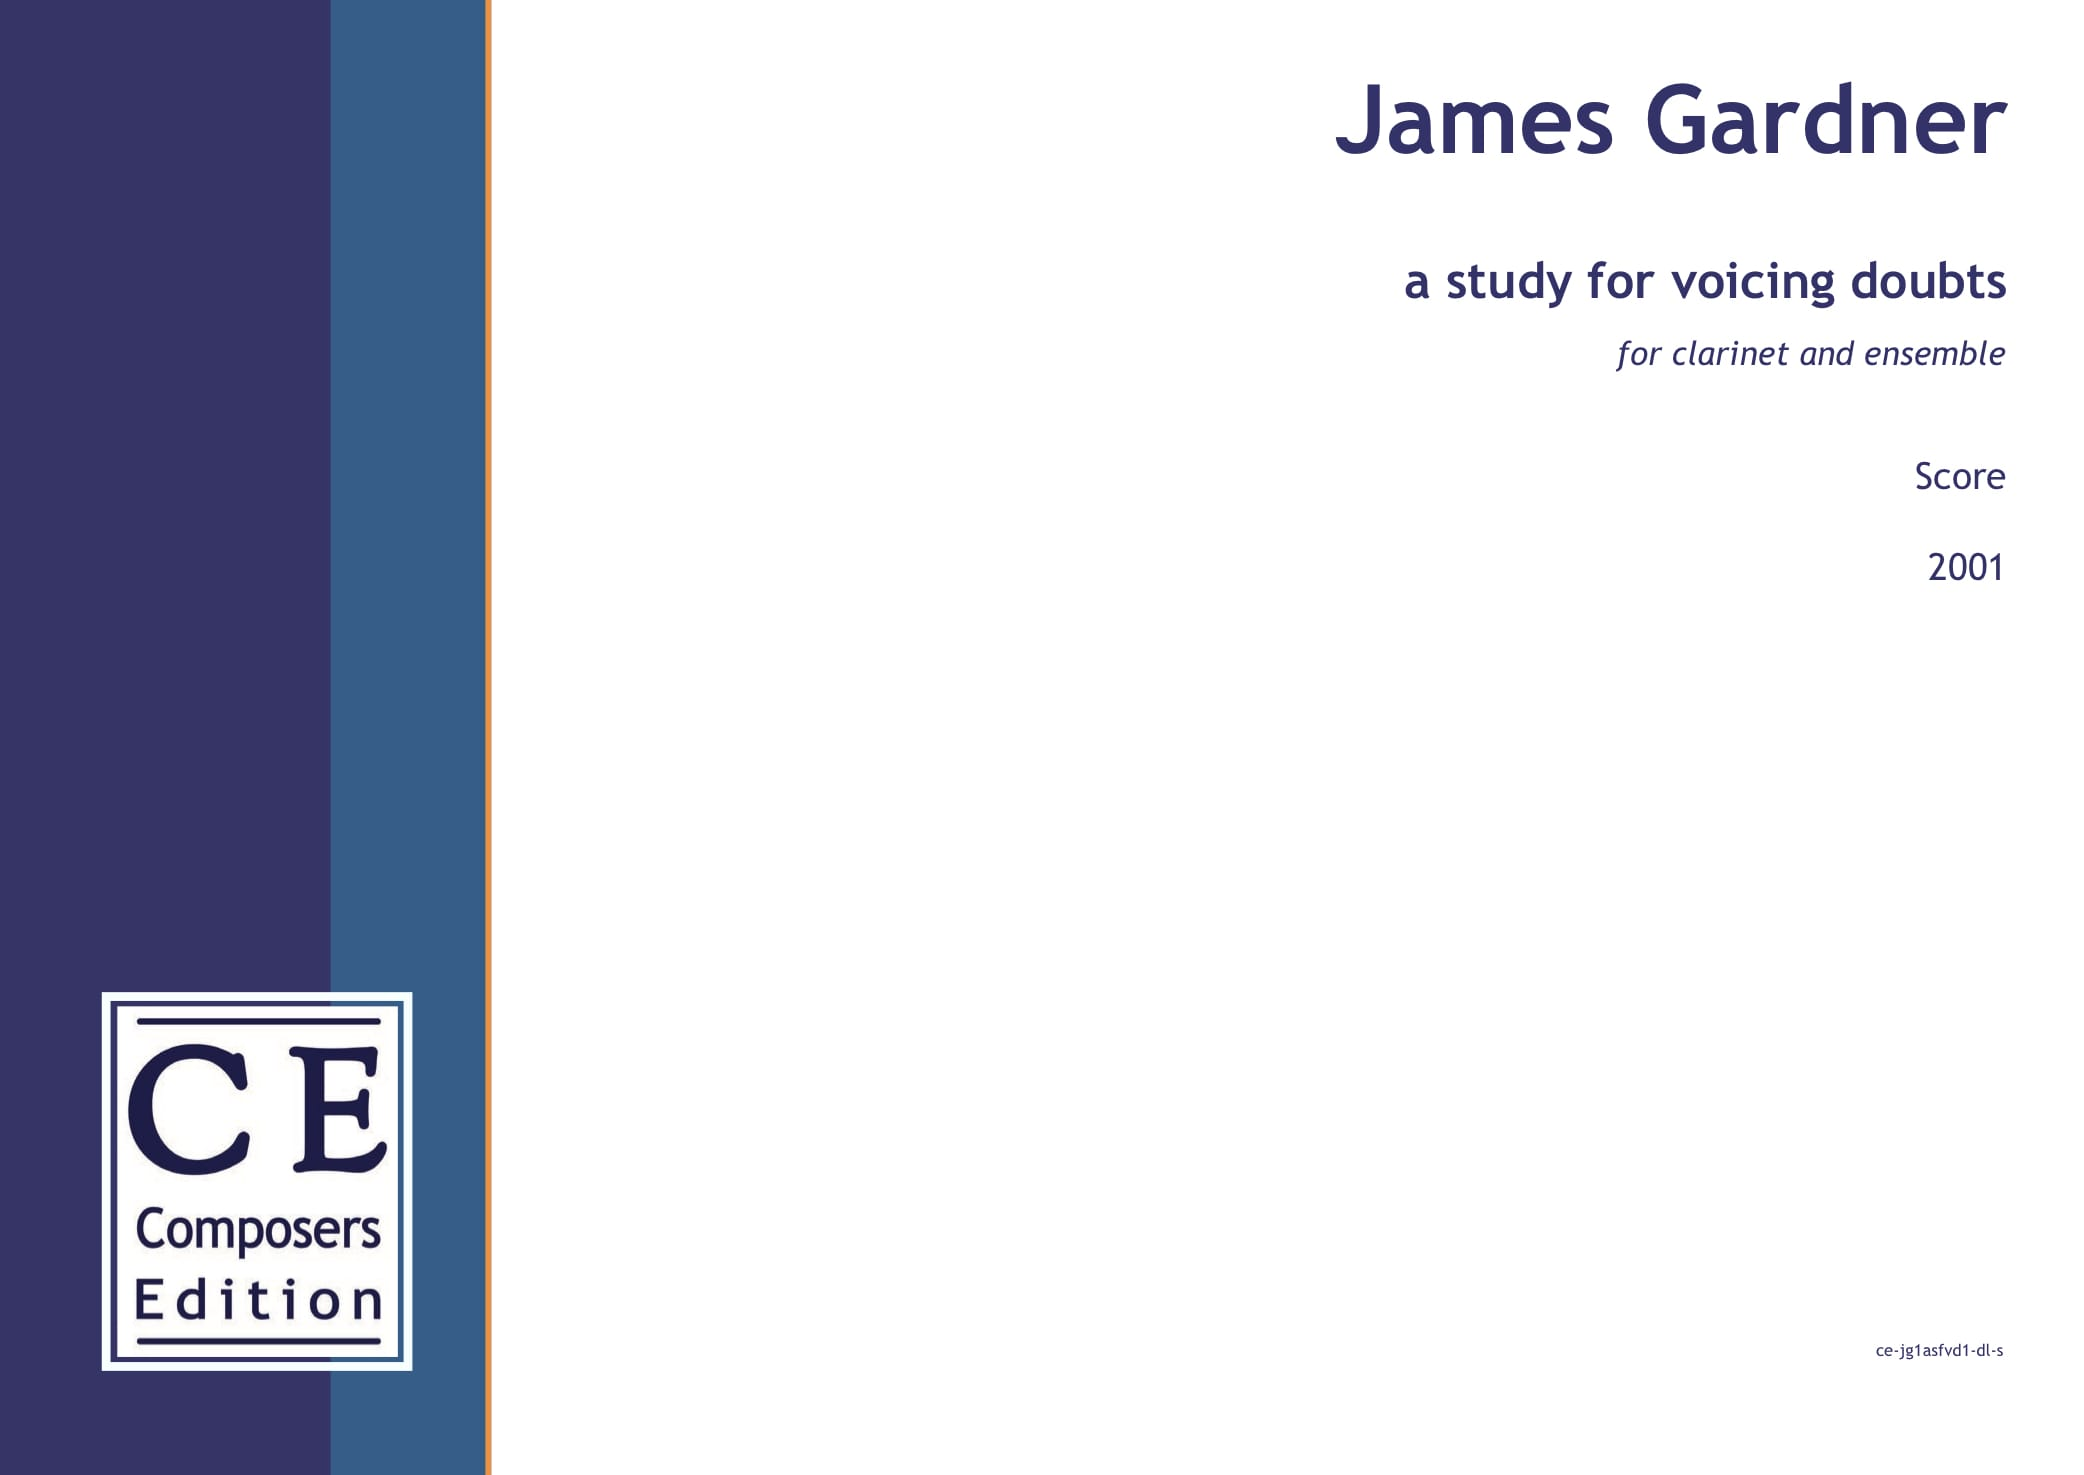 James Gardner: a study for voicing doubts for clarinet and ensemble